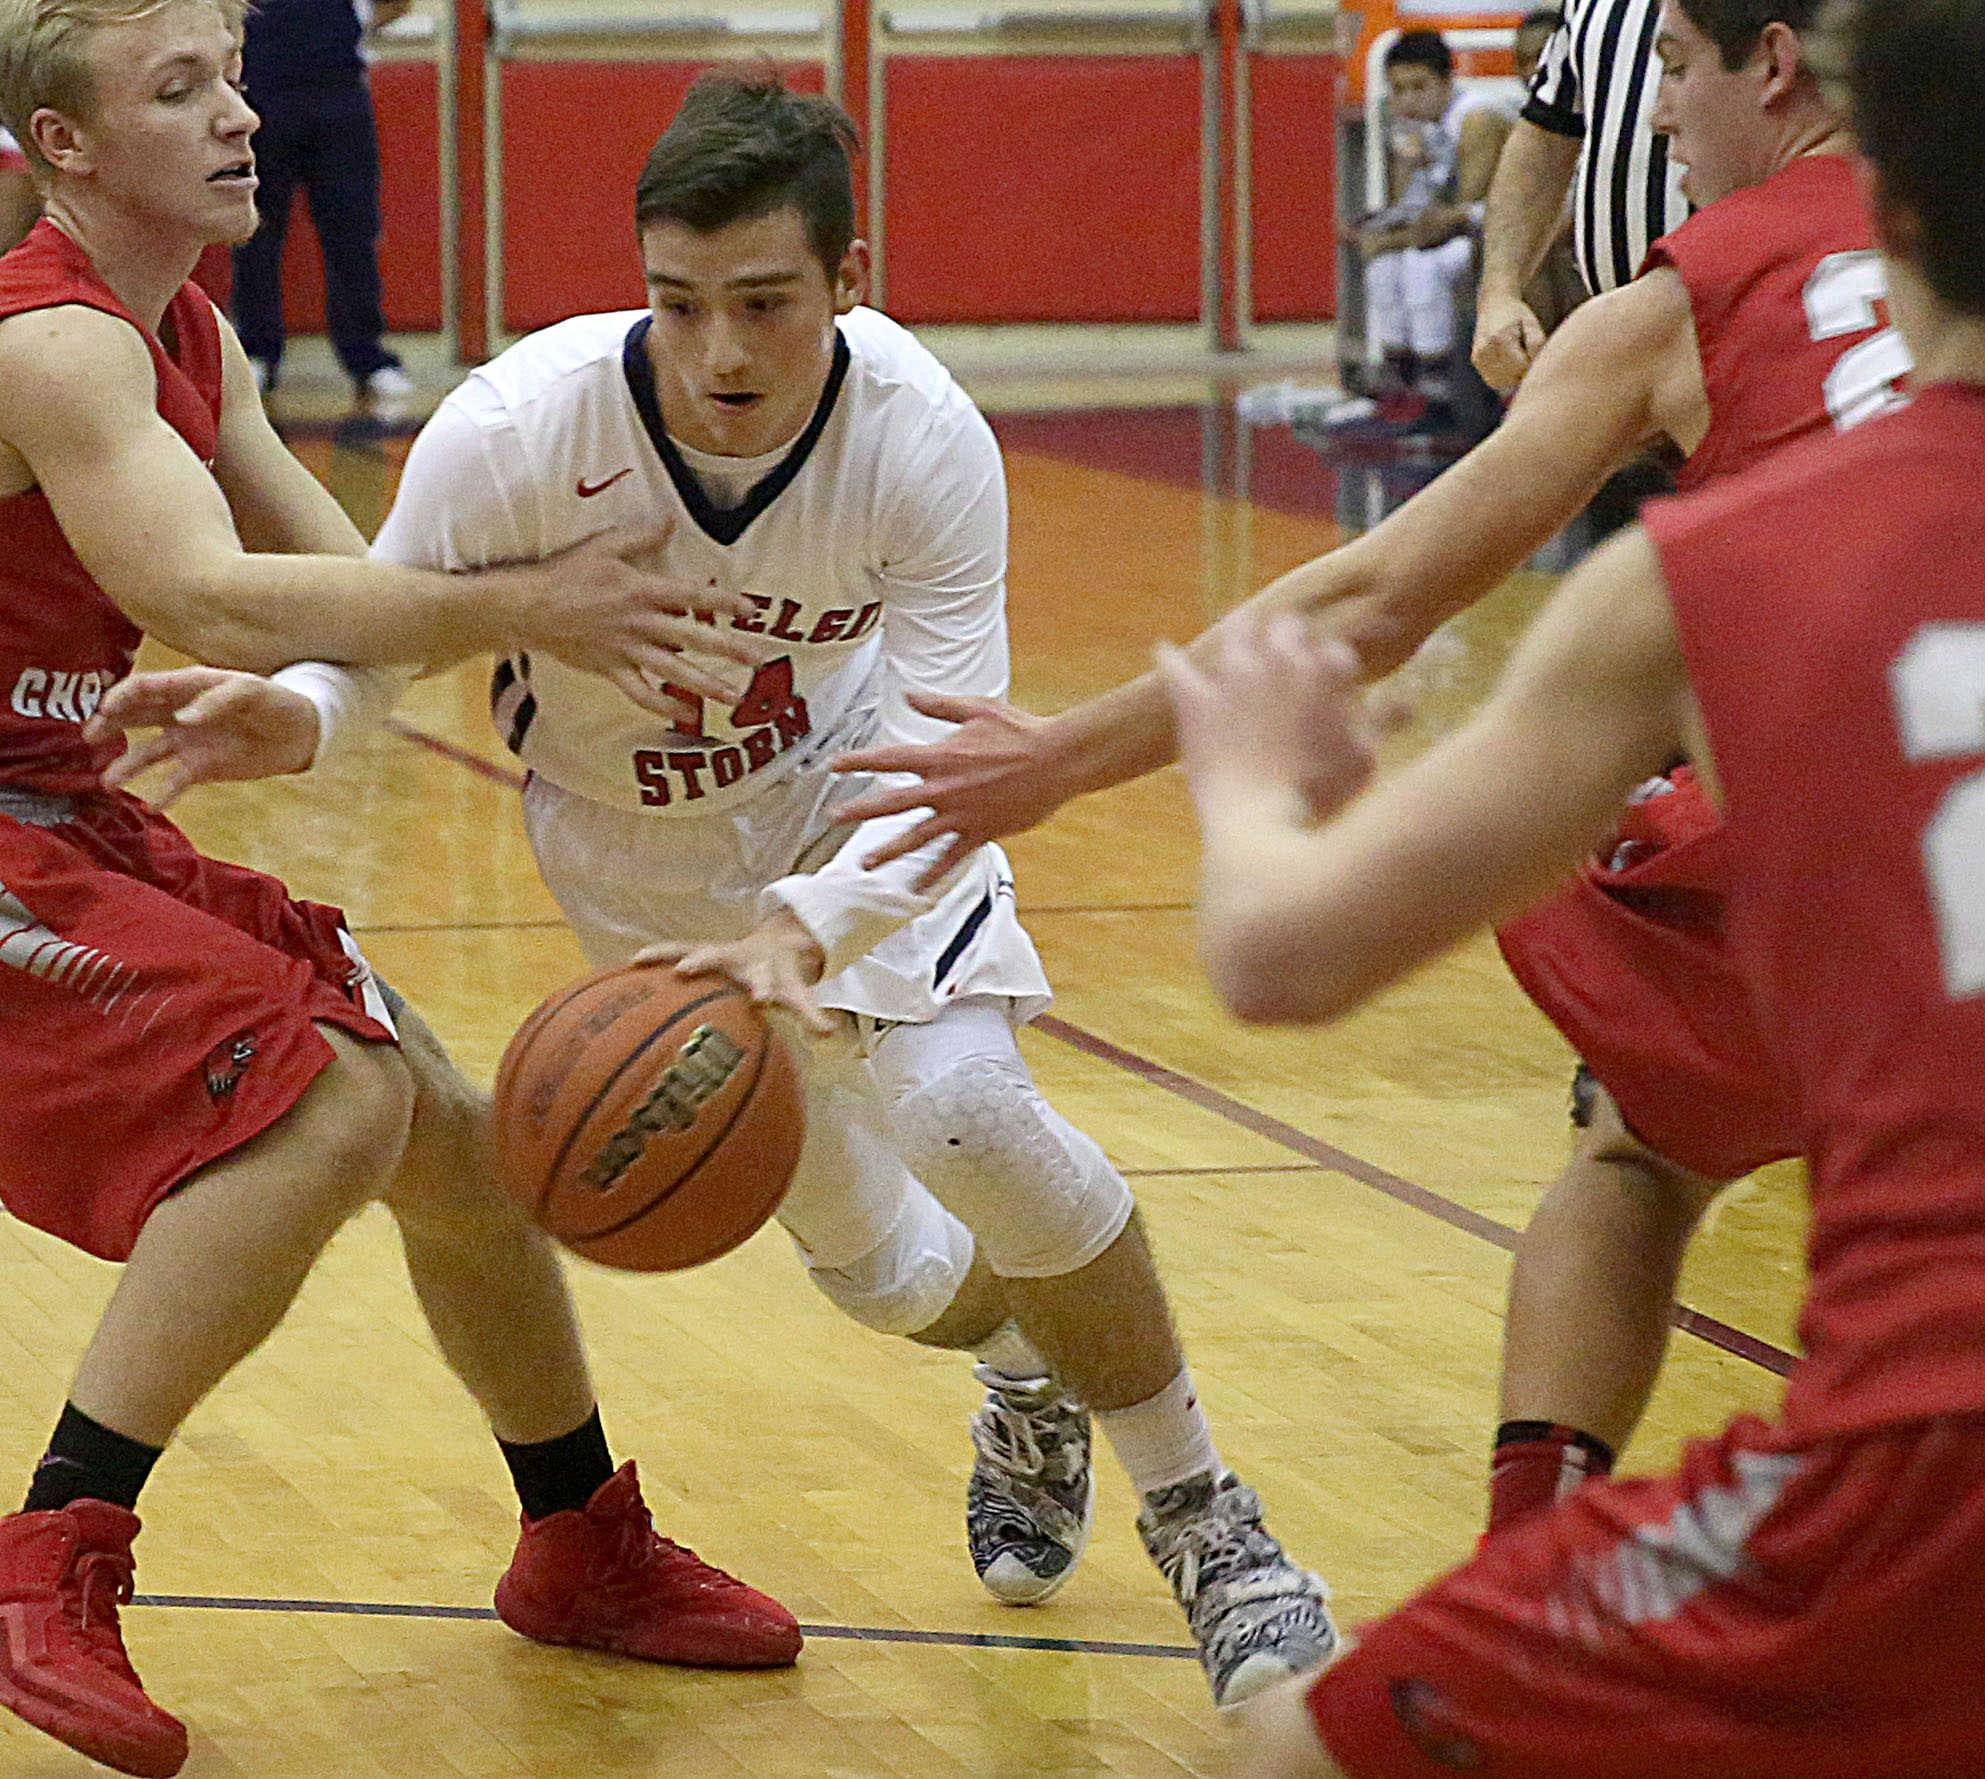 South Elgin hangs on to beat Aurora Christian